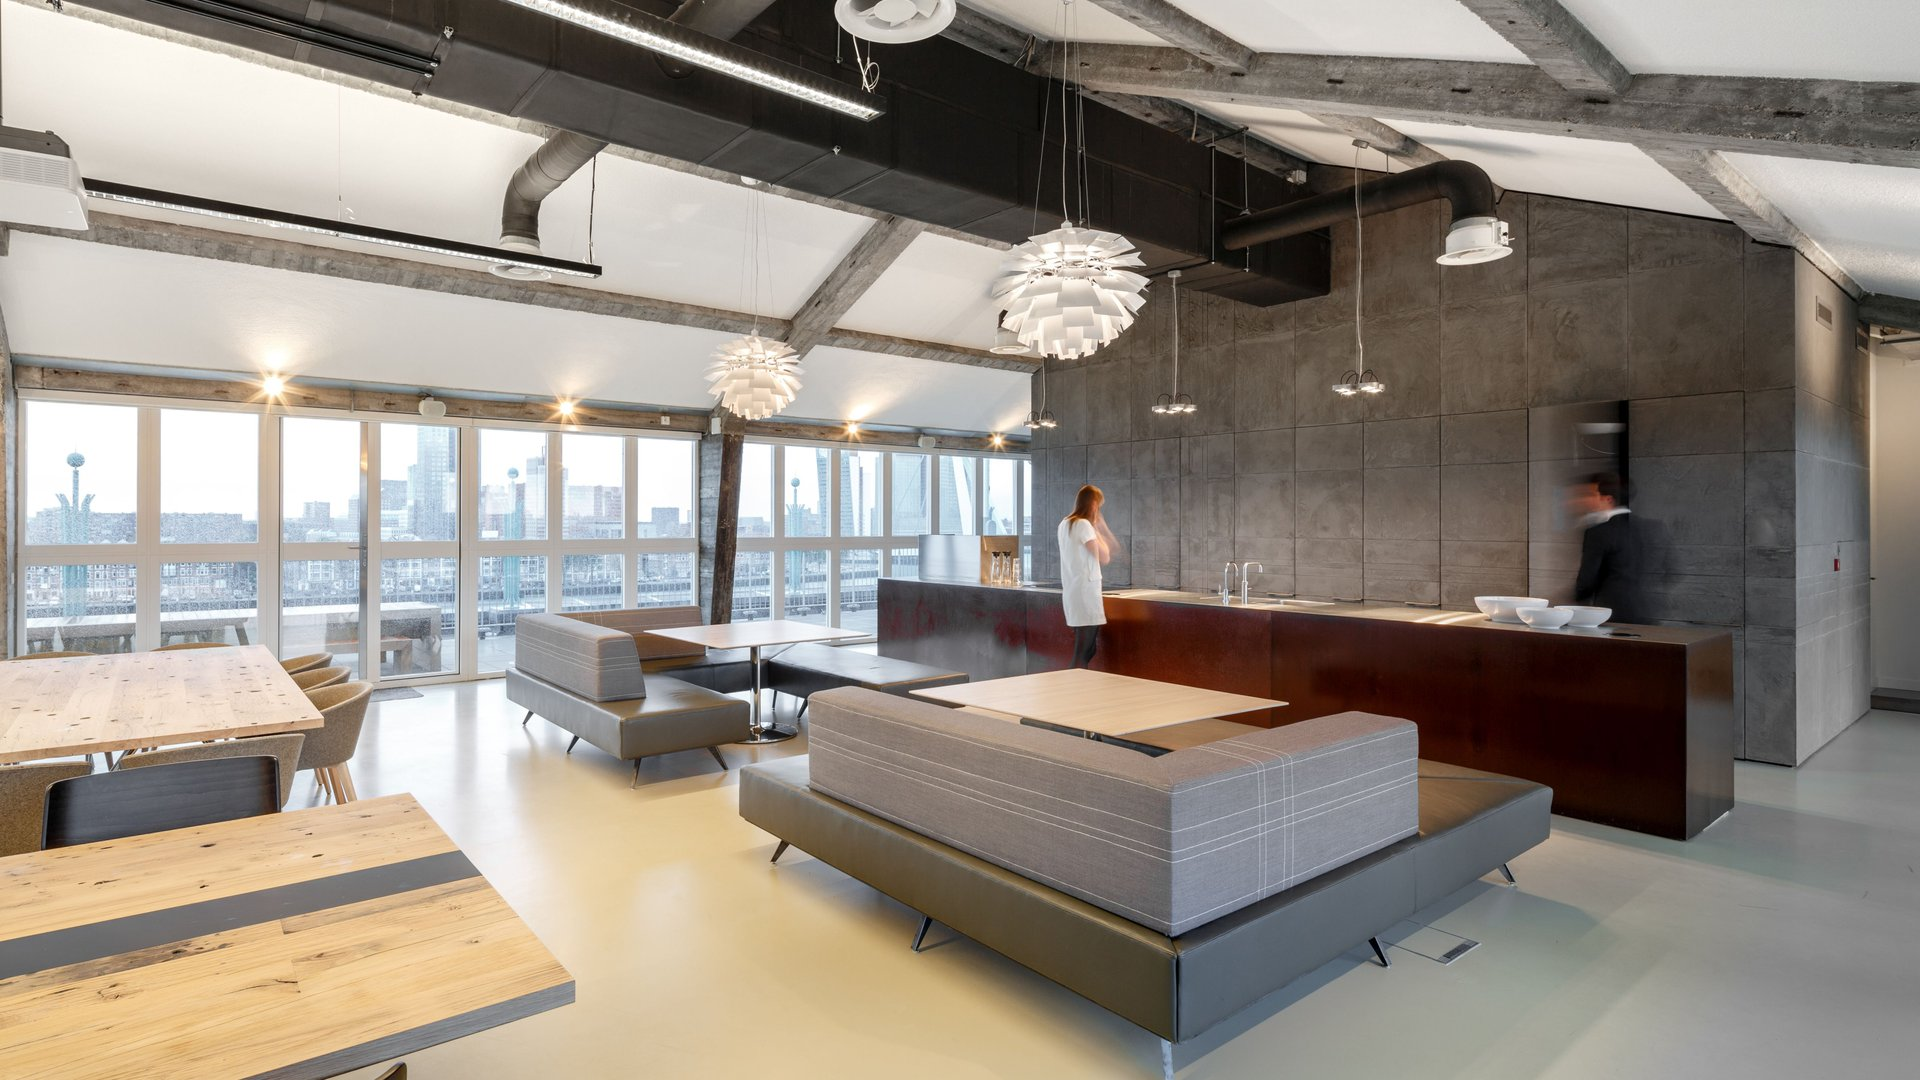 For EY Parthenon, Fokkema Architects realised a bright and surprising office environment, with a renovation of de nieuwe bank building in Rotterdam.